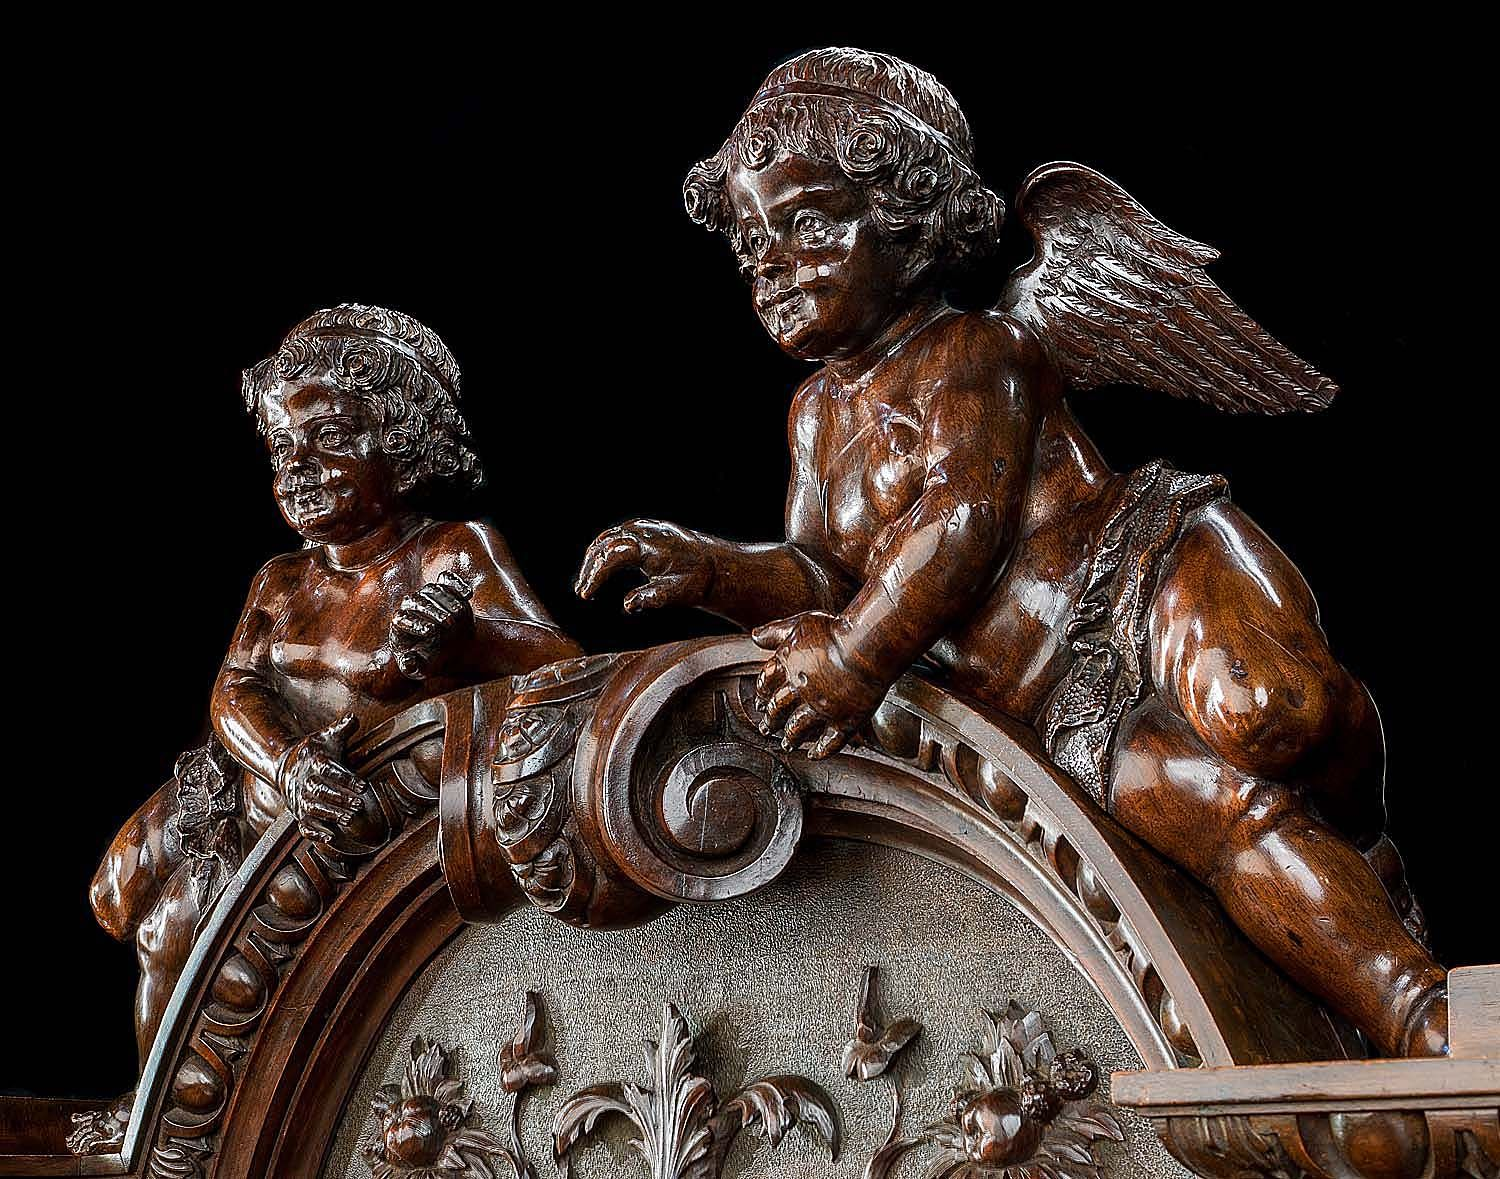 A Monumental Carved Walnut Sideboard in the early 17th century Venetian Baroque manner with a high arched back pediment surmounted by a pair of carousing cherubs above three ornate panels carved with mythical beasts, birds and scrolling foliage each flanked by four grand lion masks. The foliate decoration is echoed on the drawer fronts set above four powerful caryatid figures of Atlas and a pair of cupboards the doors, the recess and the sides of which are carved with detailed strapwork…